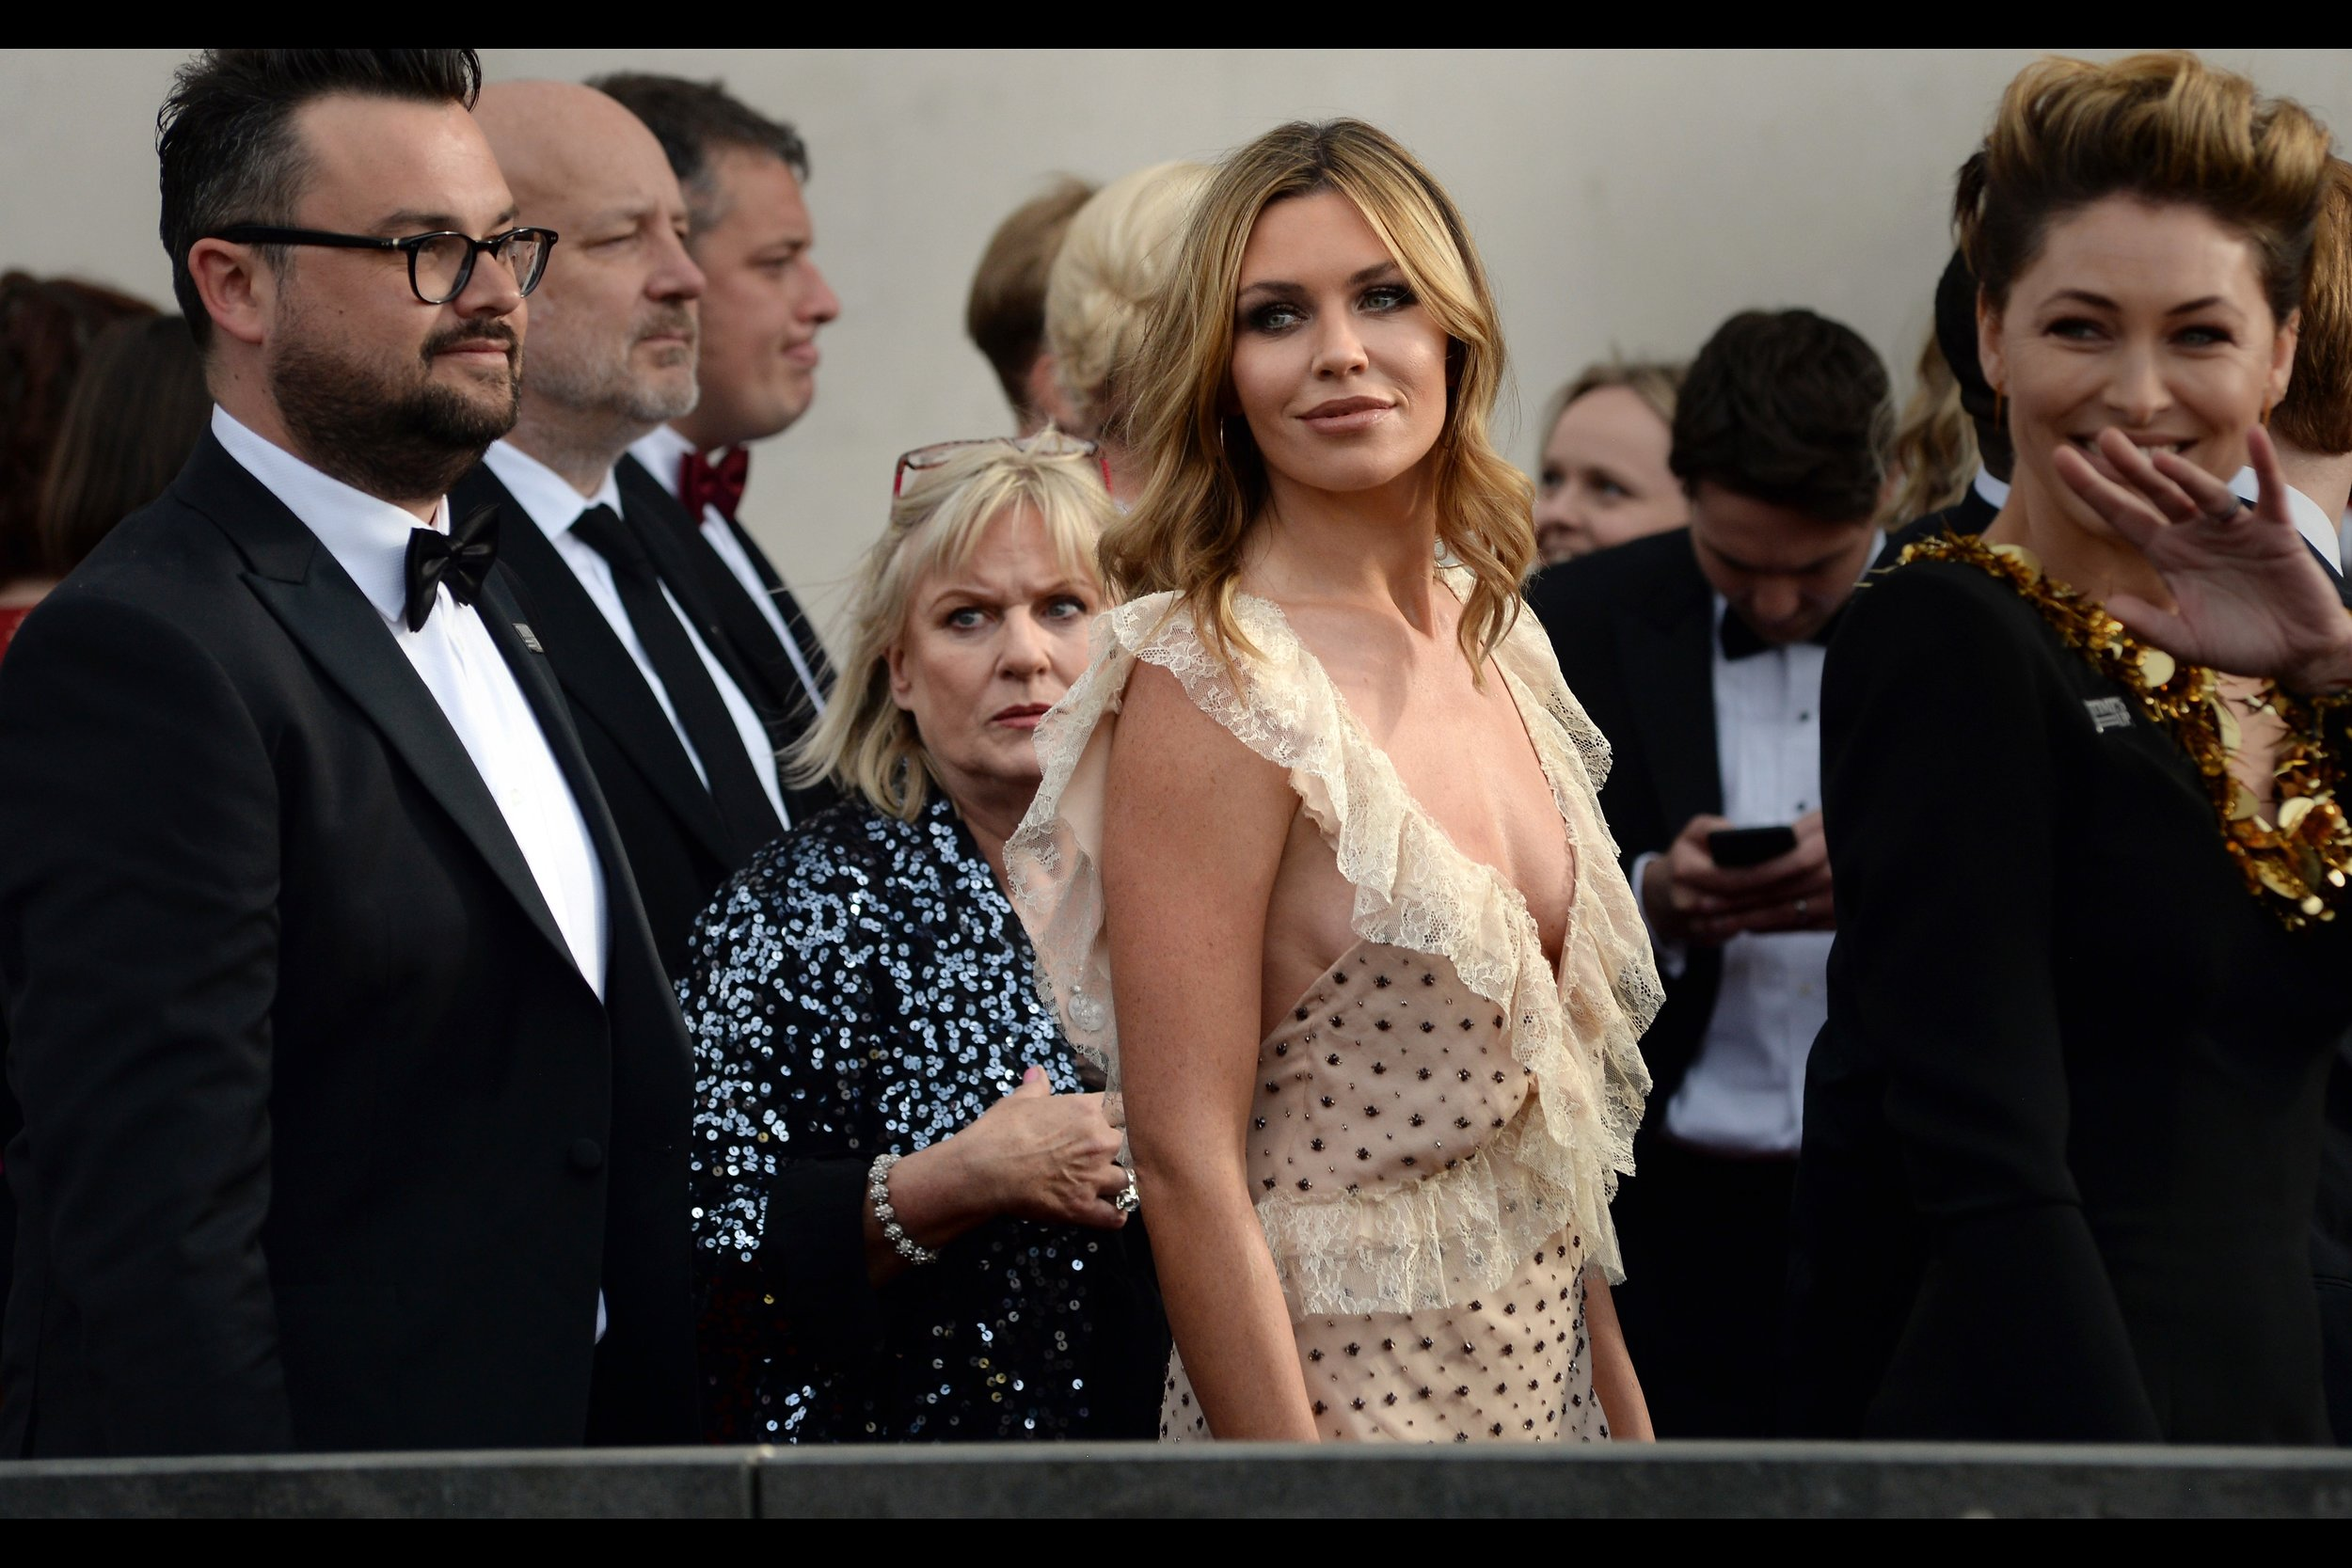 Abbey Clancey.... I think I photographed her at a GQ Awards, once. The scary/vexed looking woman behind her is not somebody I'm any more familiar with.